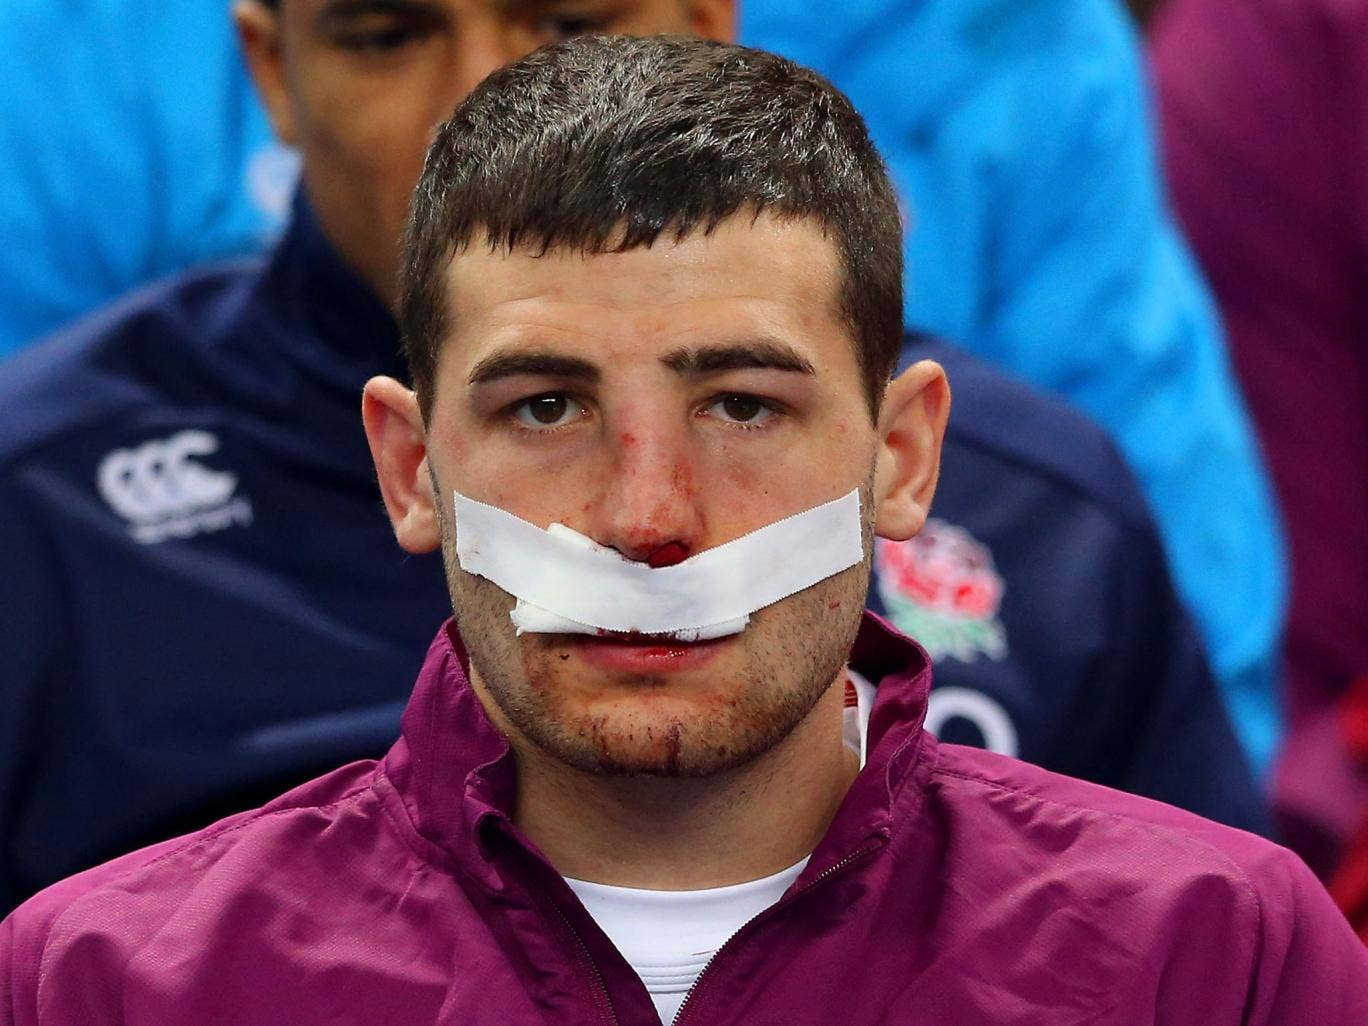 England wing Jonny May could miss the Calcutta Cup clash with Scotland due to a broken nose he suffered in the defeat to France